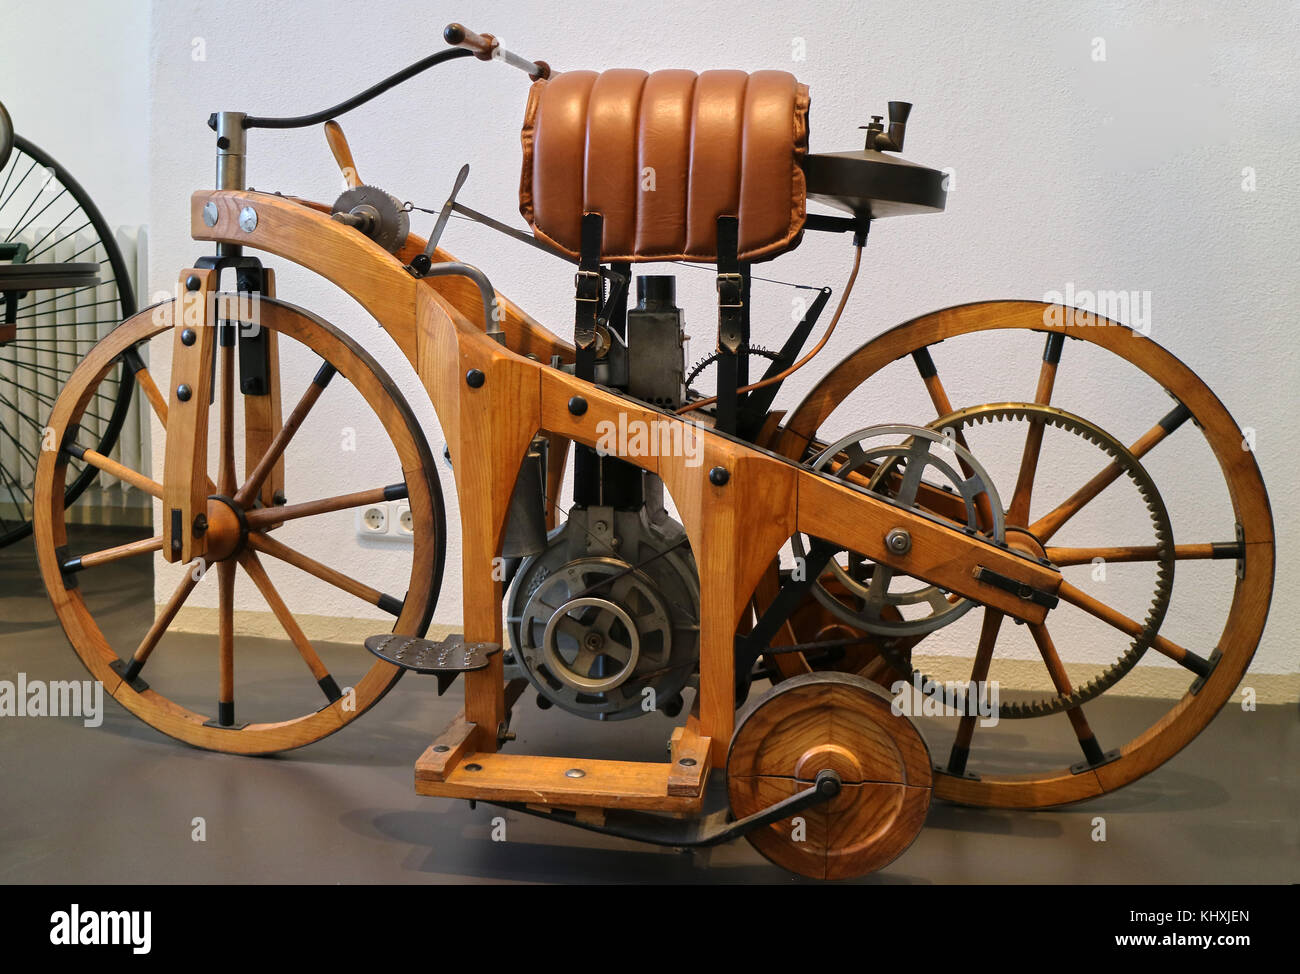 daimler motorcycle 1885 stock photos daimler motorcycle 1885 stock images alamy. Black Bedroom Furniture Sets. Home Design Ideas